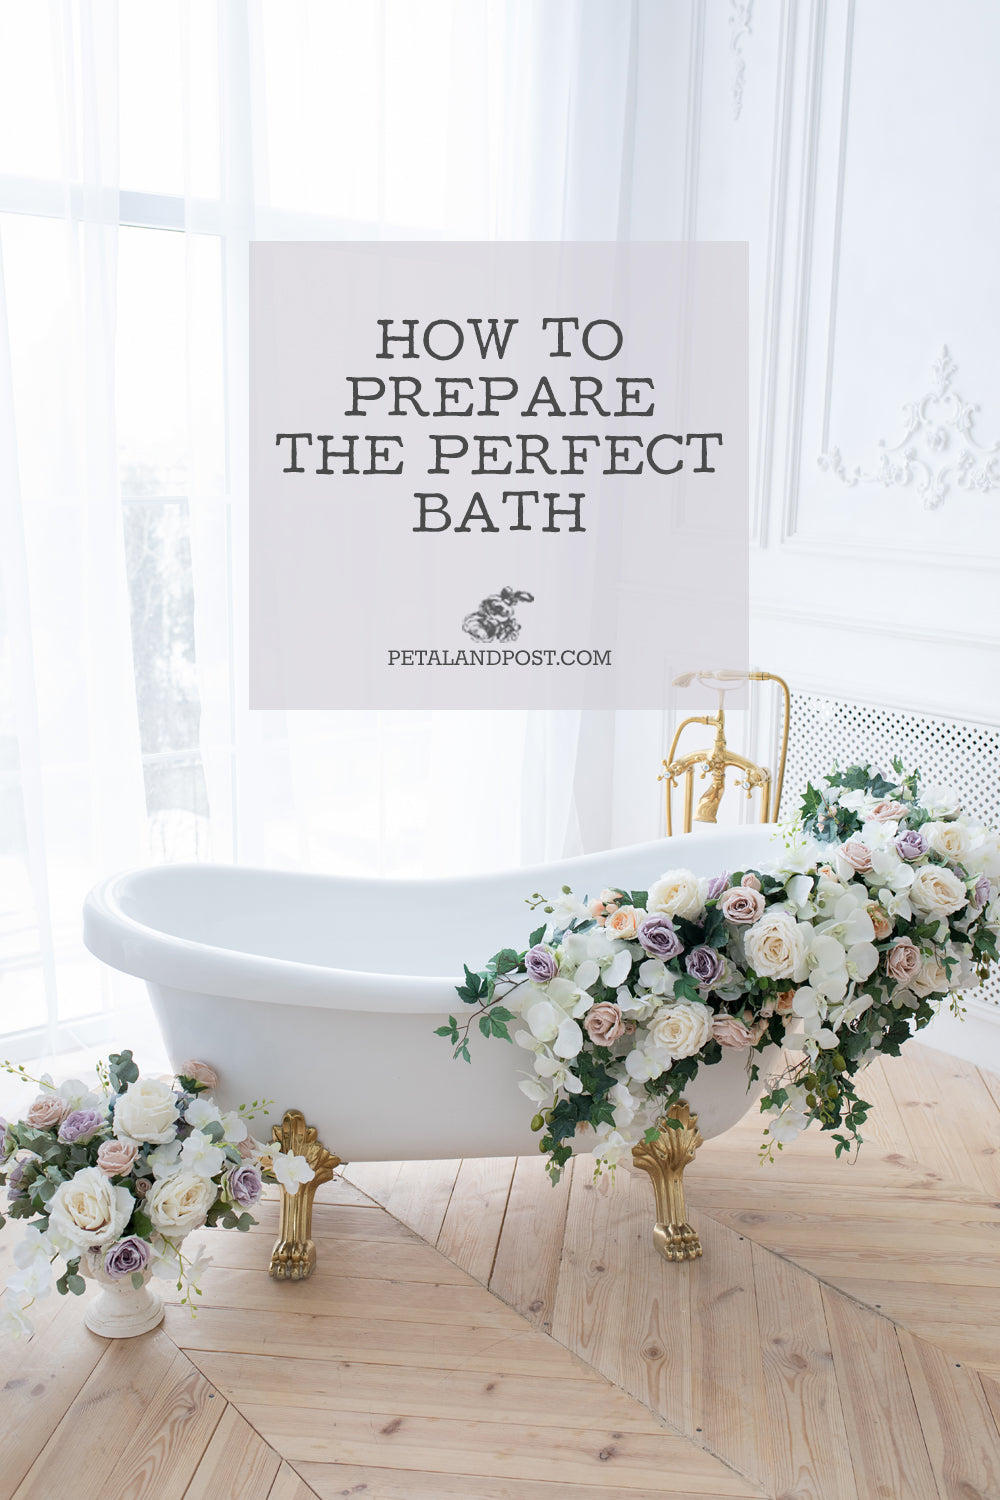 How to prepare the perfect bath.